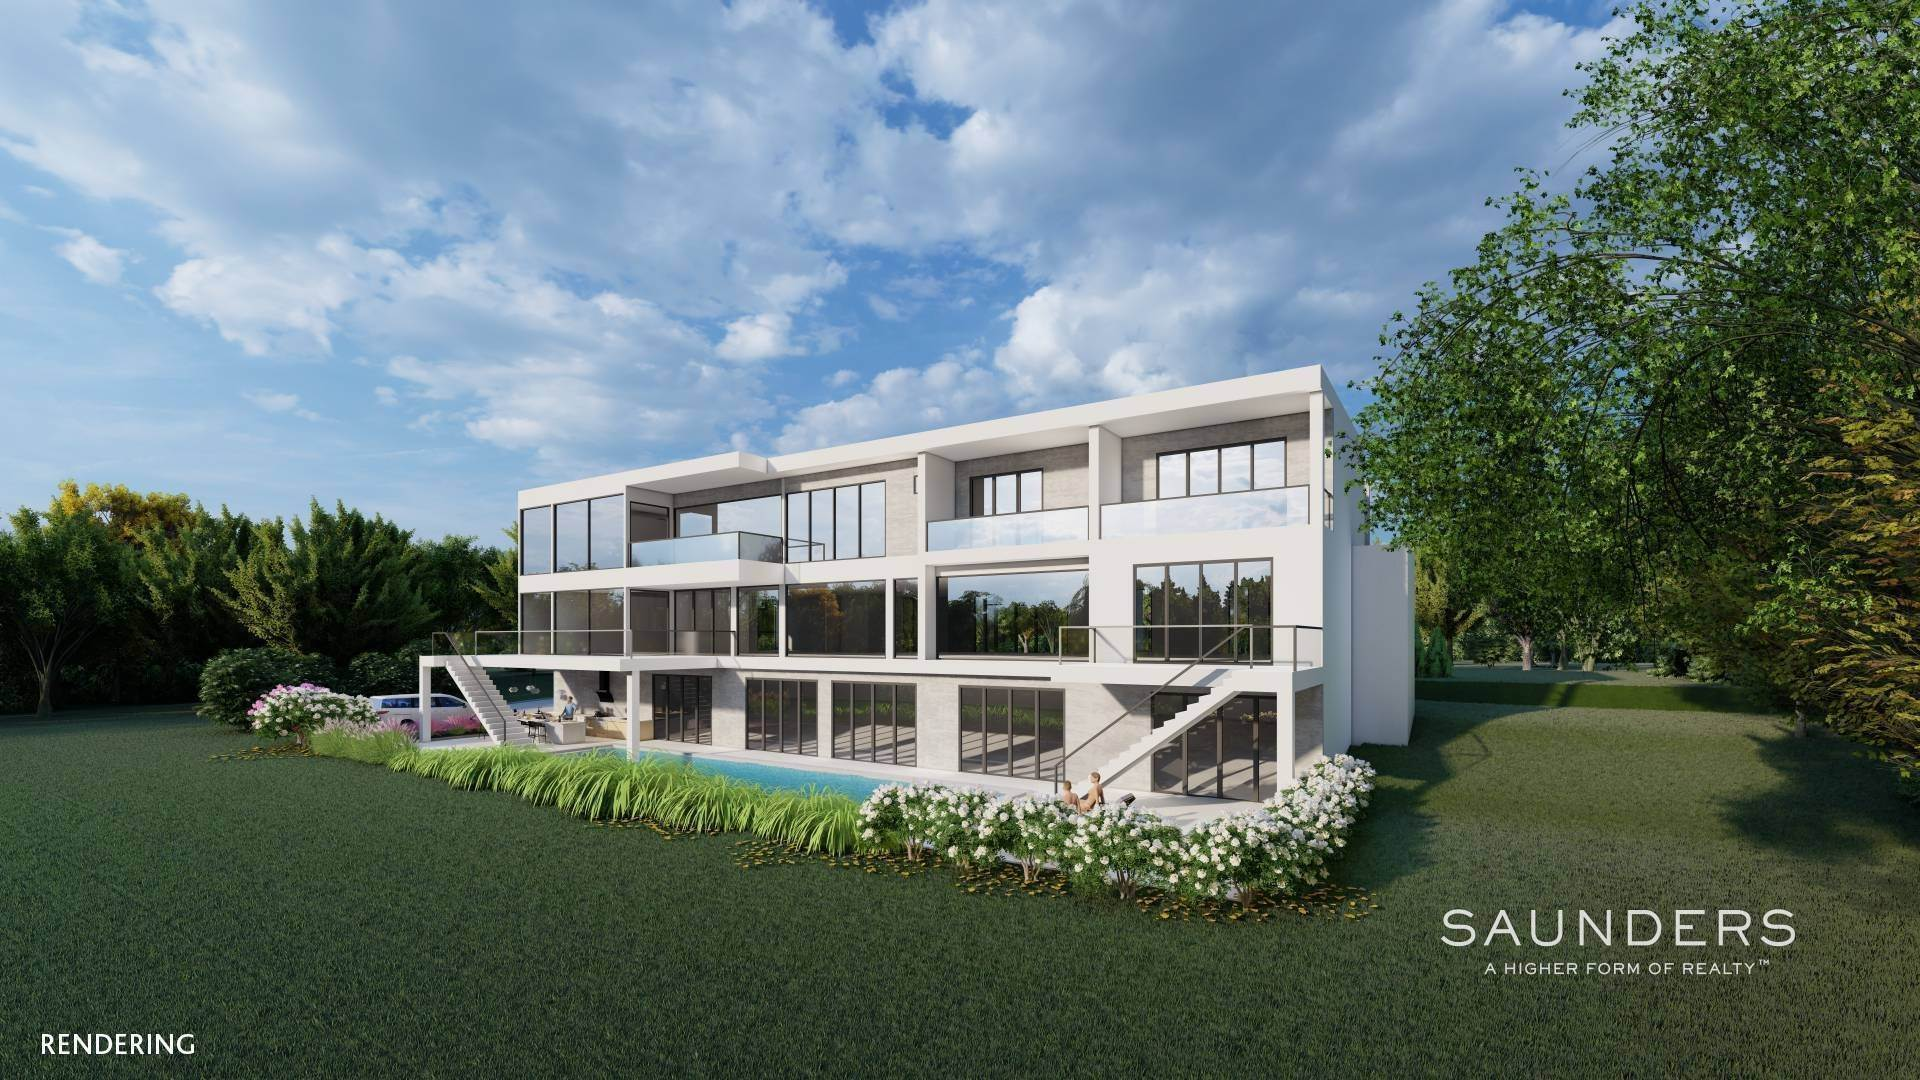 Single Family Homes for Sale at New Construction, Tranquility And Tennis In Water Mill 41 Wild Goose Lane, Water Mill, Southampton Town, NY 11976